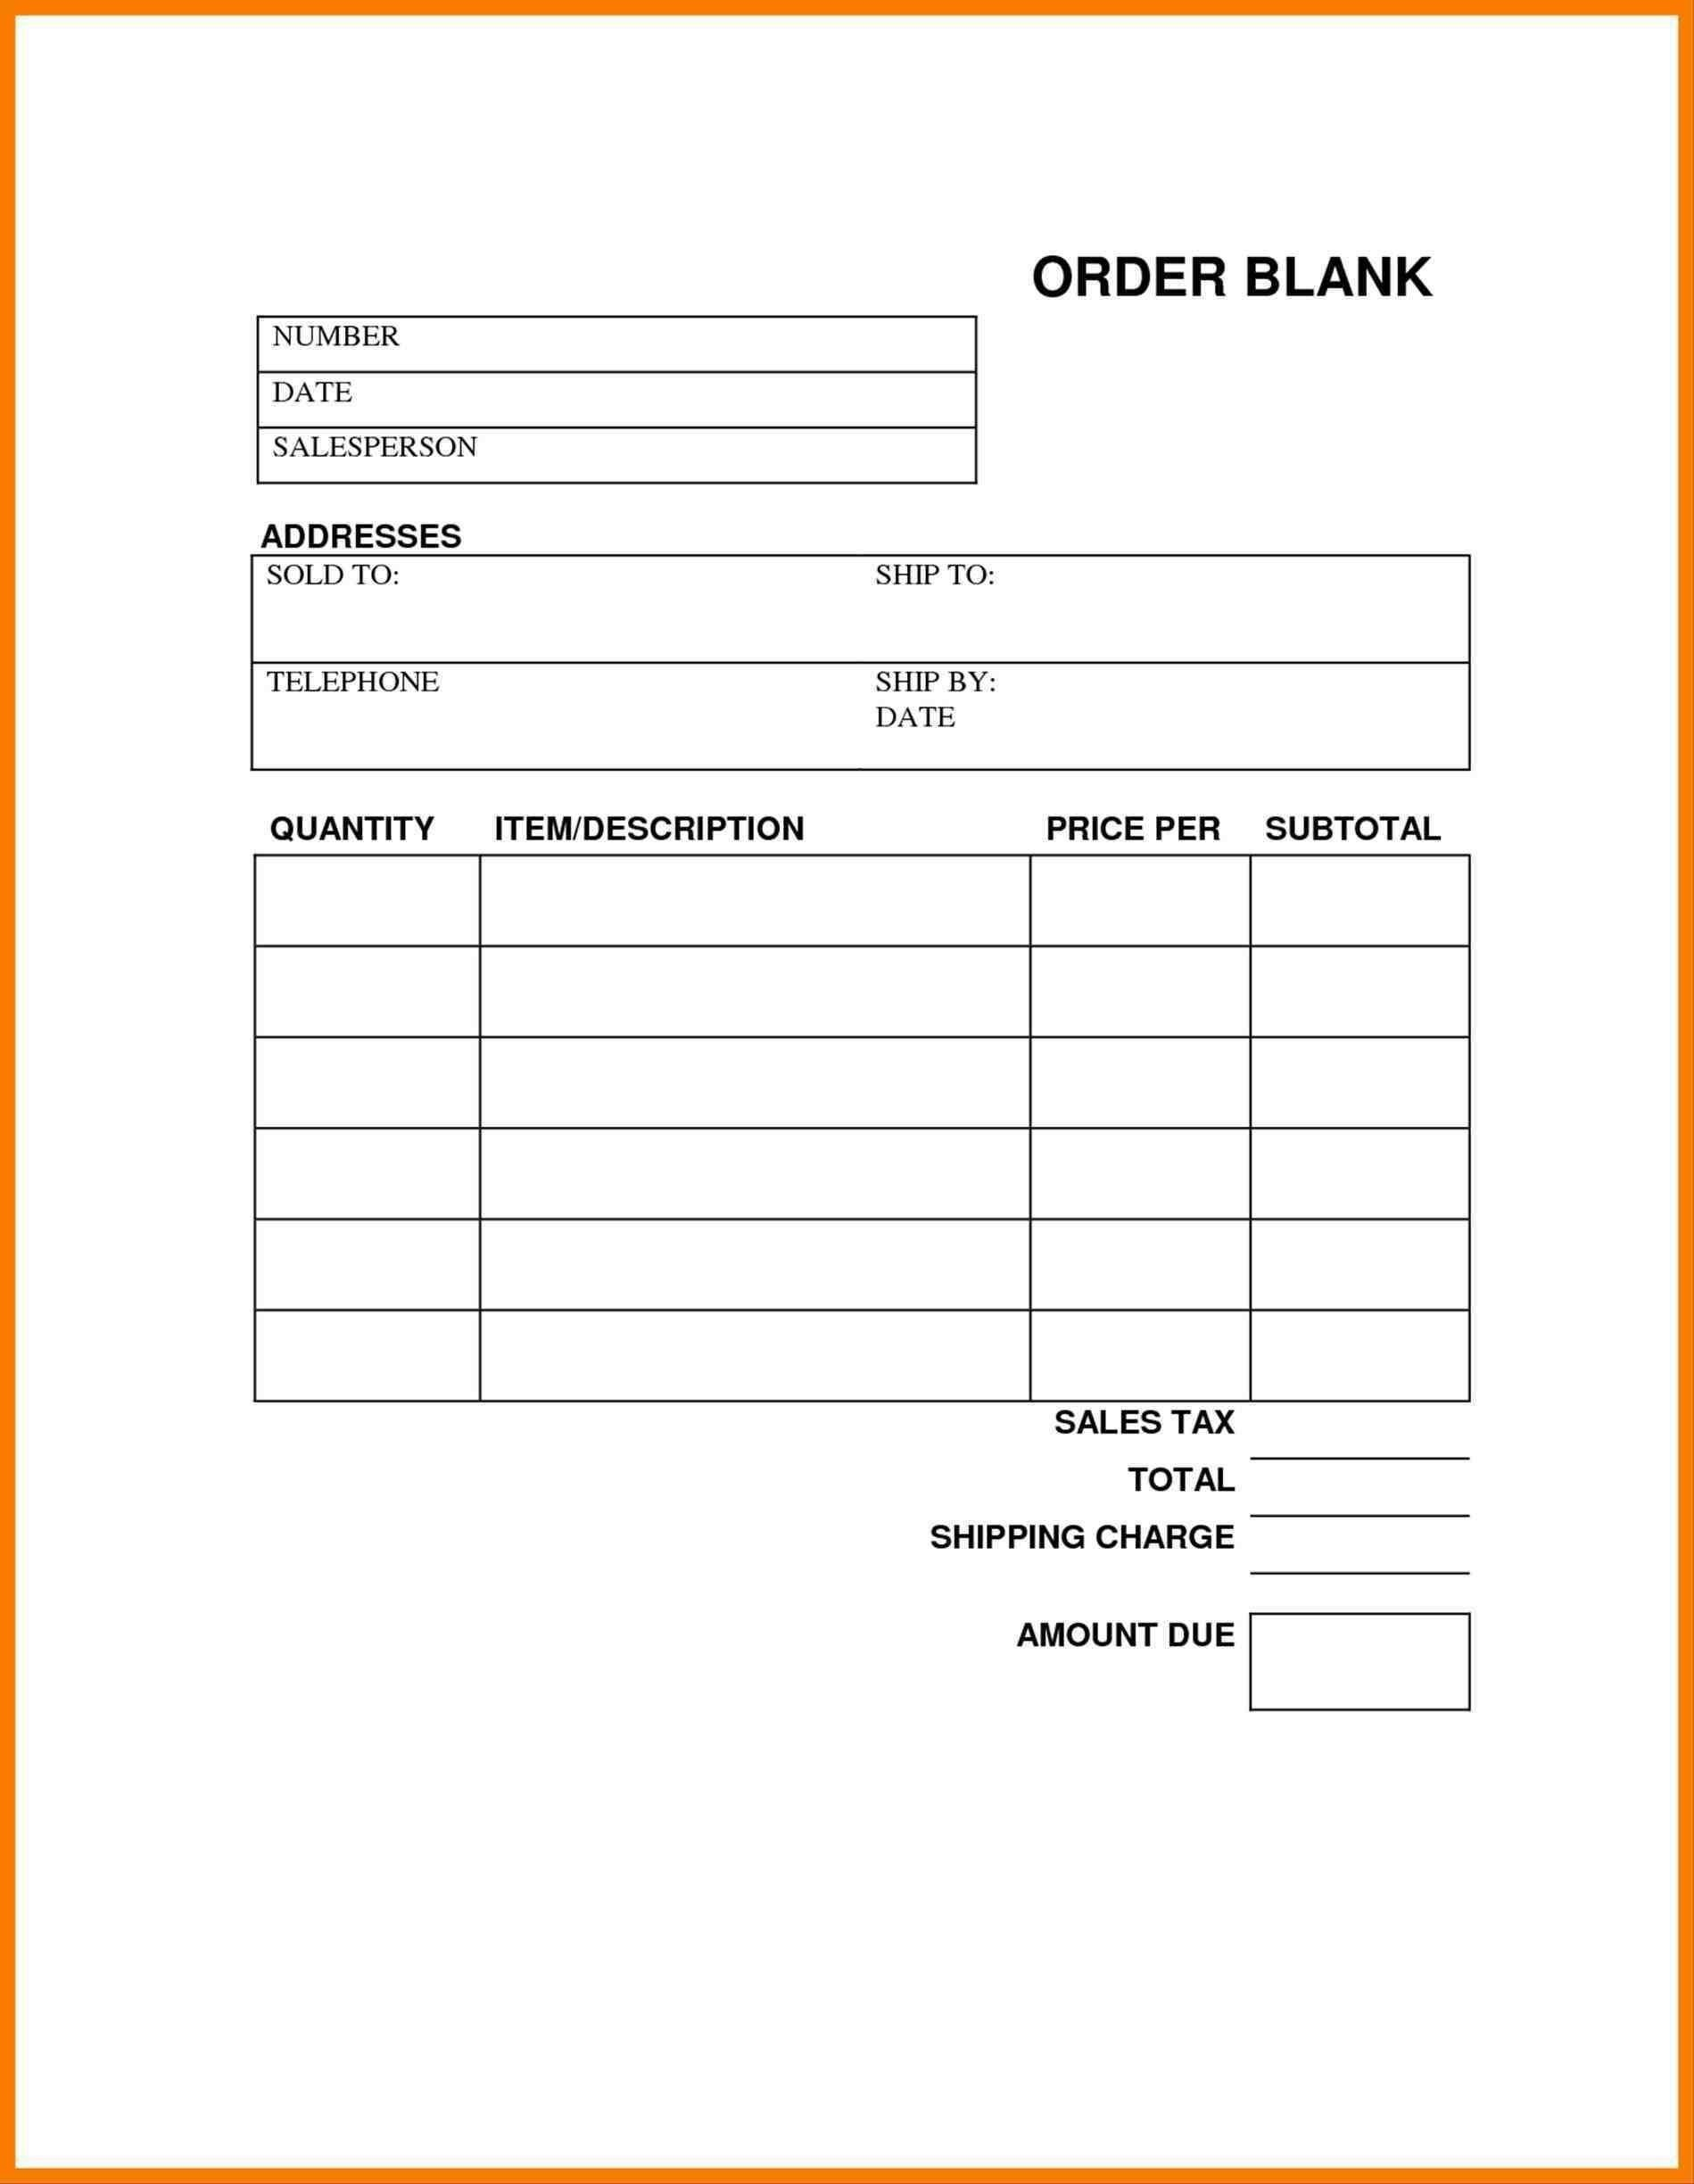 Reciept Form New Free Printable Receipt Forms Online With Form Plus - Free Printable Forms